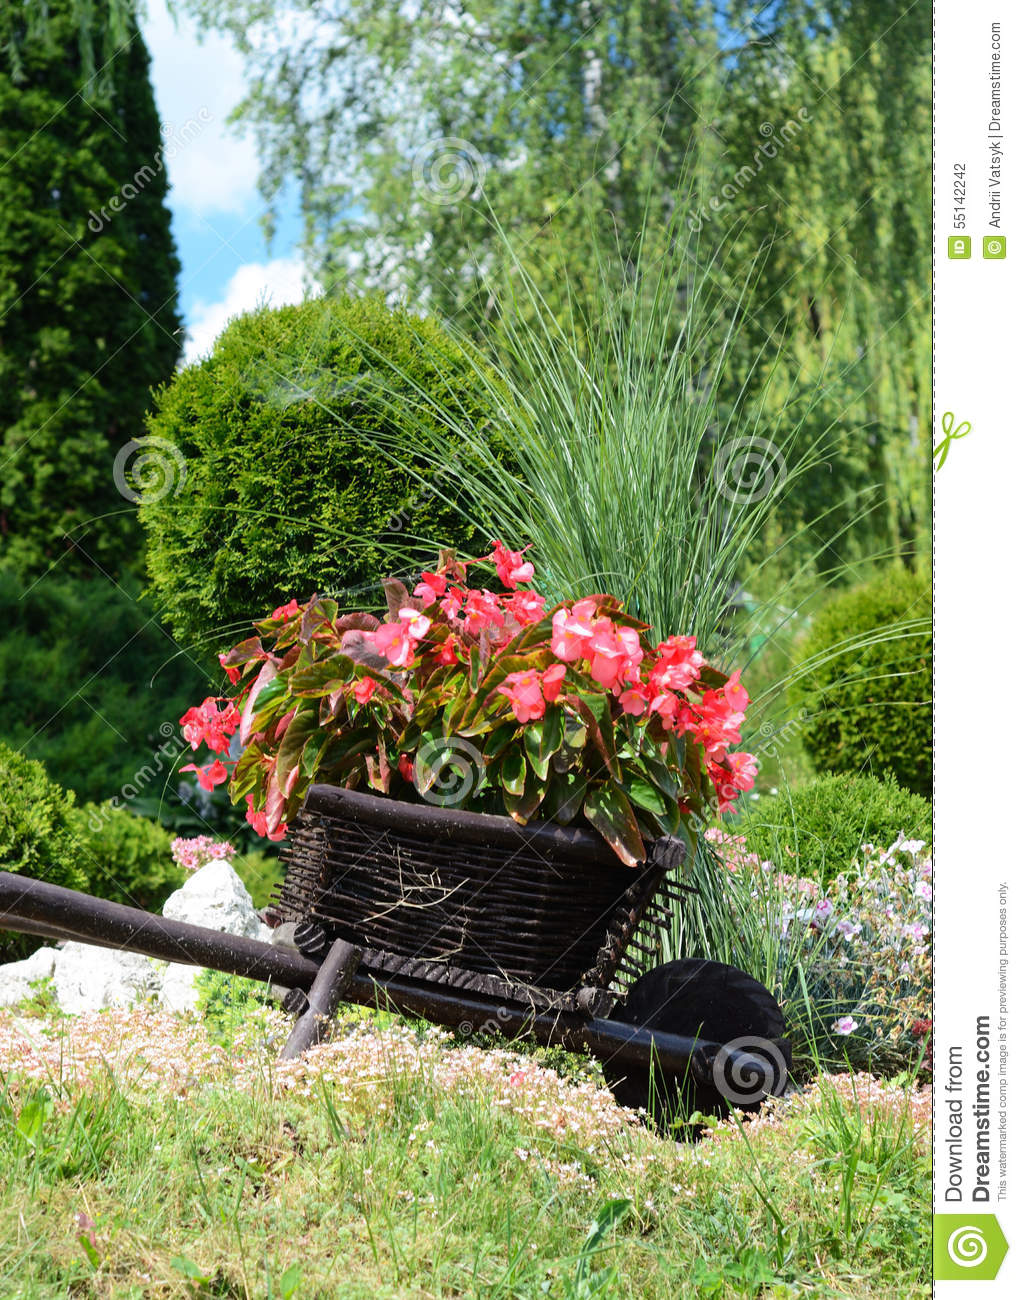 Red Flowers In The Garden On A Small Decorative Wooden Wagon Stock ...